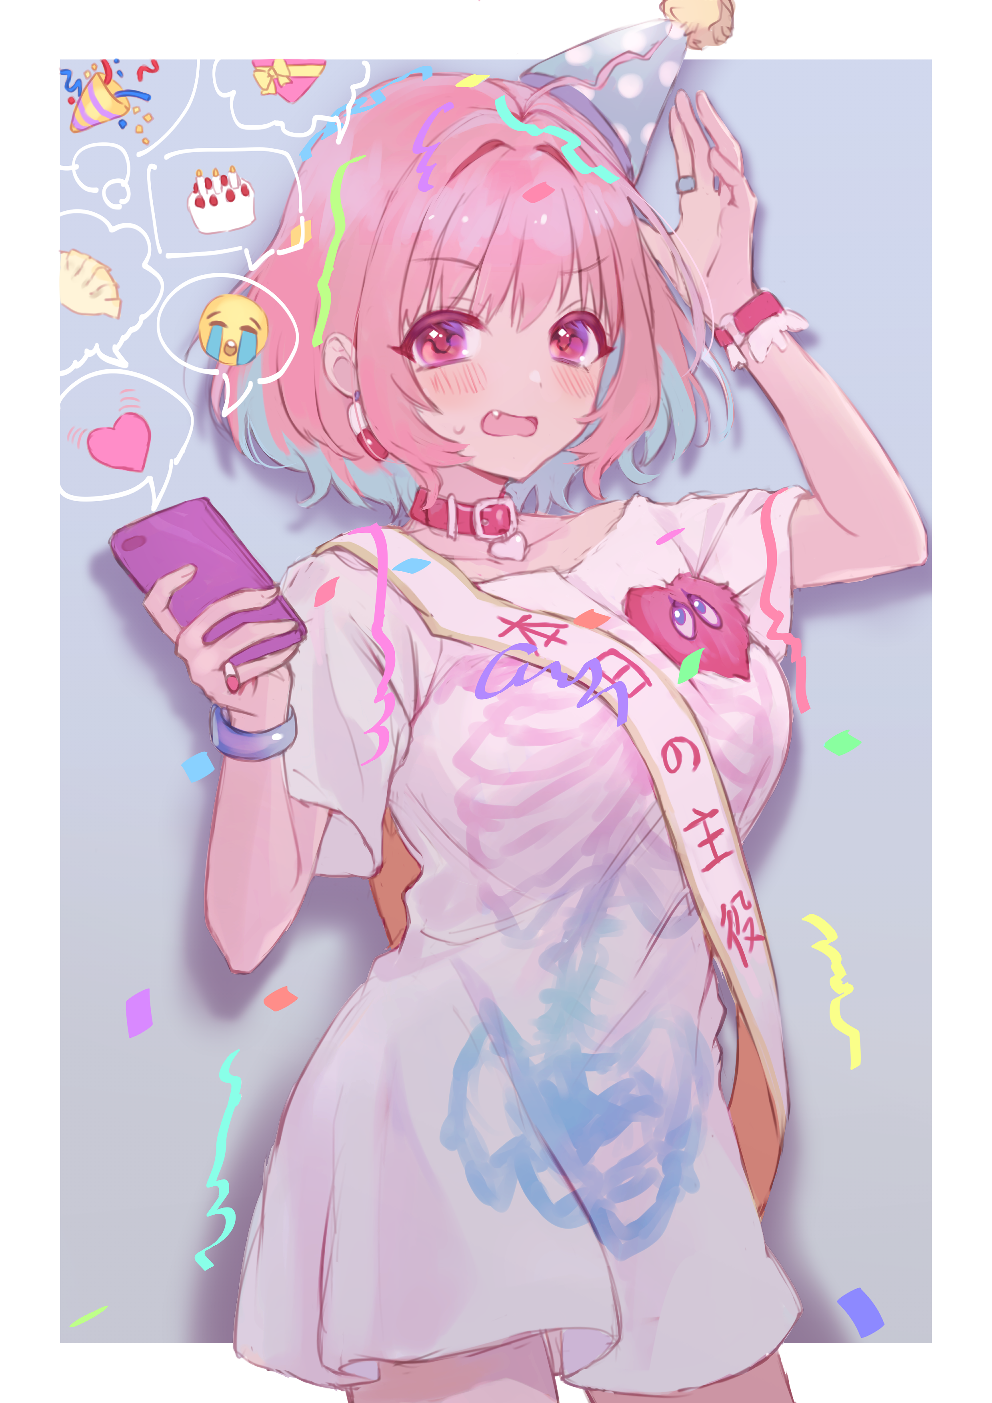 1girl anoa birthday_cake blue_hair blush box breasts burning cake candle cellphone closed_eyes collar collarbone commentary_request confetti cowboy_shot crying fang fire food gift gift_box hat heart heart-shaped_box highres holding holding_cellphone holding_phone idolmaster idolmaster_cinderella_girls large_breasts looking_at_viewer multicolored_hair open_mouth party_hat party_popper phone pill_earrings pink_hair polka_dot red_collar red_eyes sash shirt skeleton_print solo spoken_expression spoken_heart streamers streaming_tears tears thought_bubble tilted_headwear translation_request two-tone_hair white_shirt yumemi_riamu